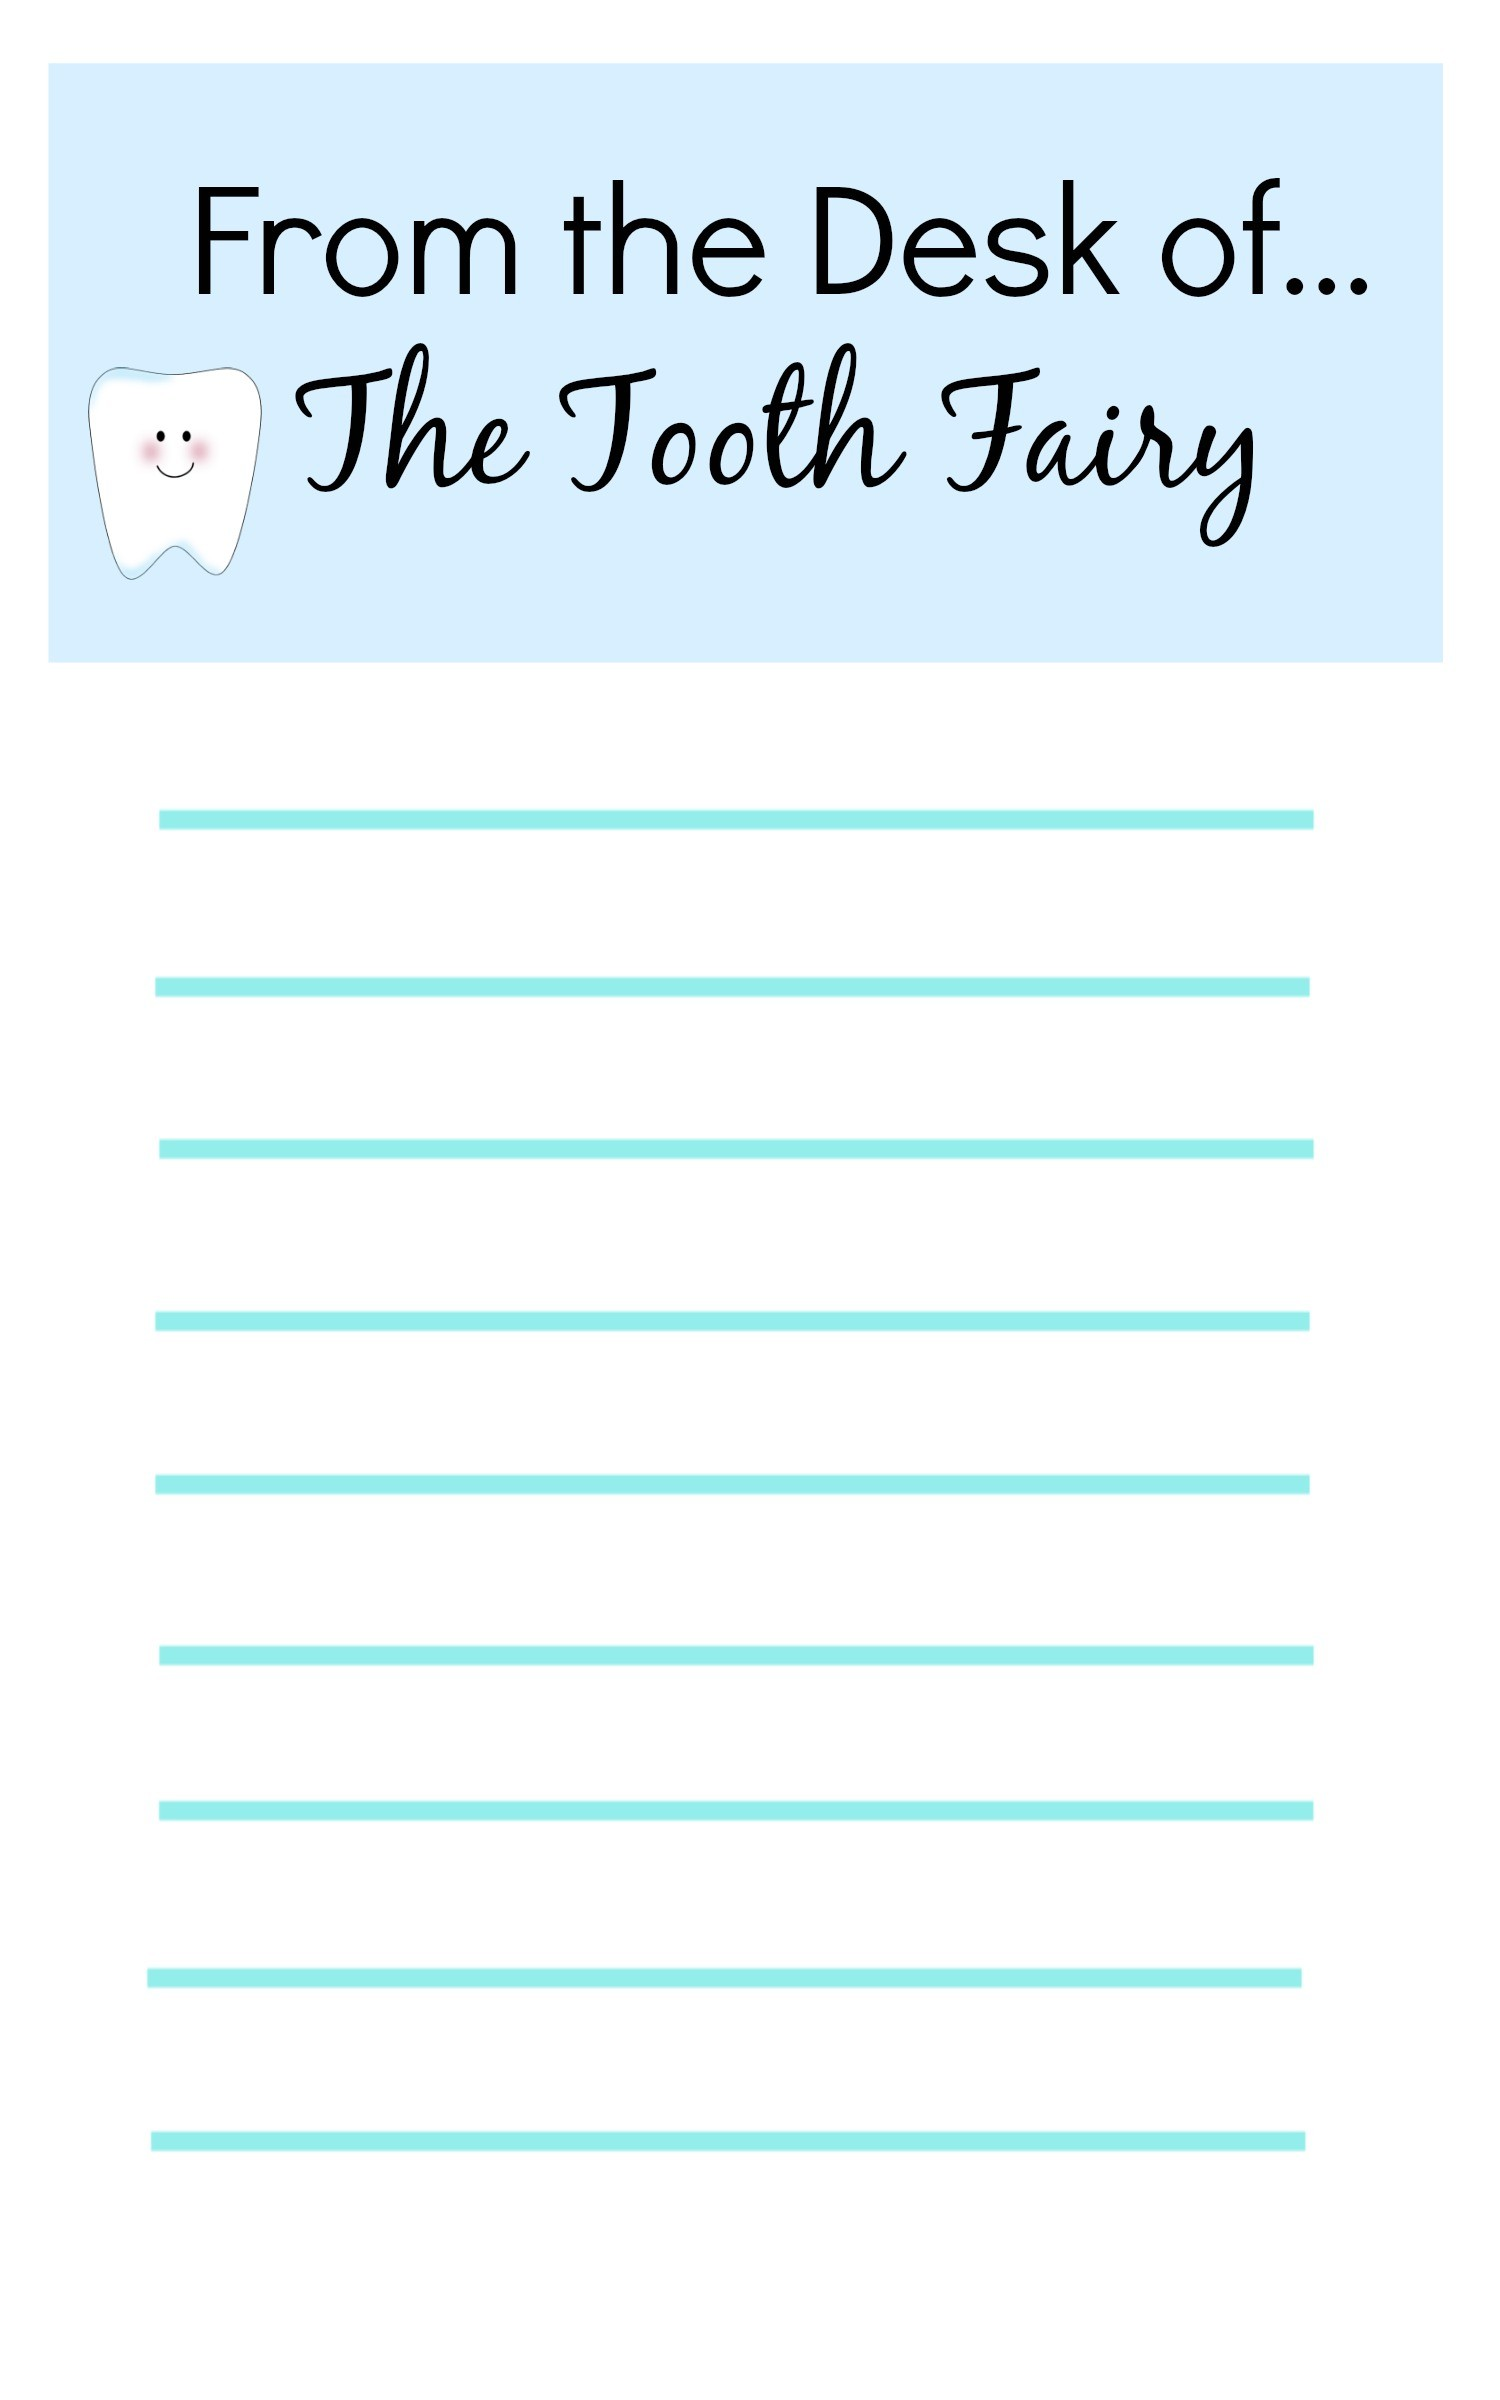 blank tooth fairy letter template  Tooth Fairy Ideas And Free Printables: Tooth Fairy ..